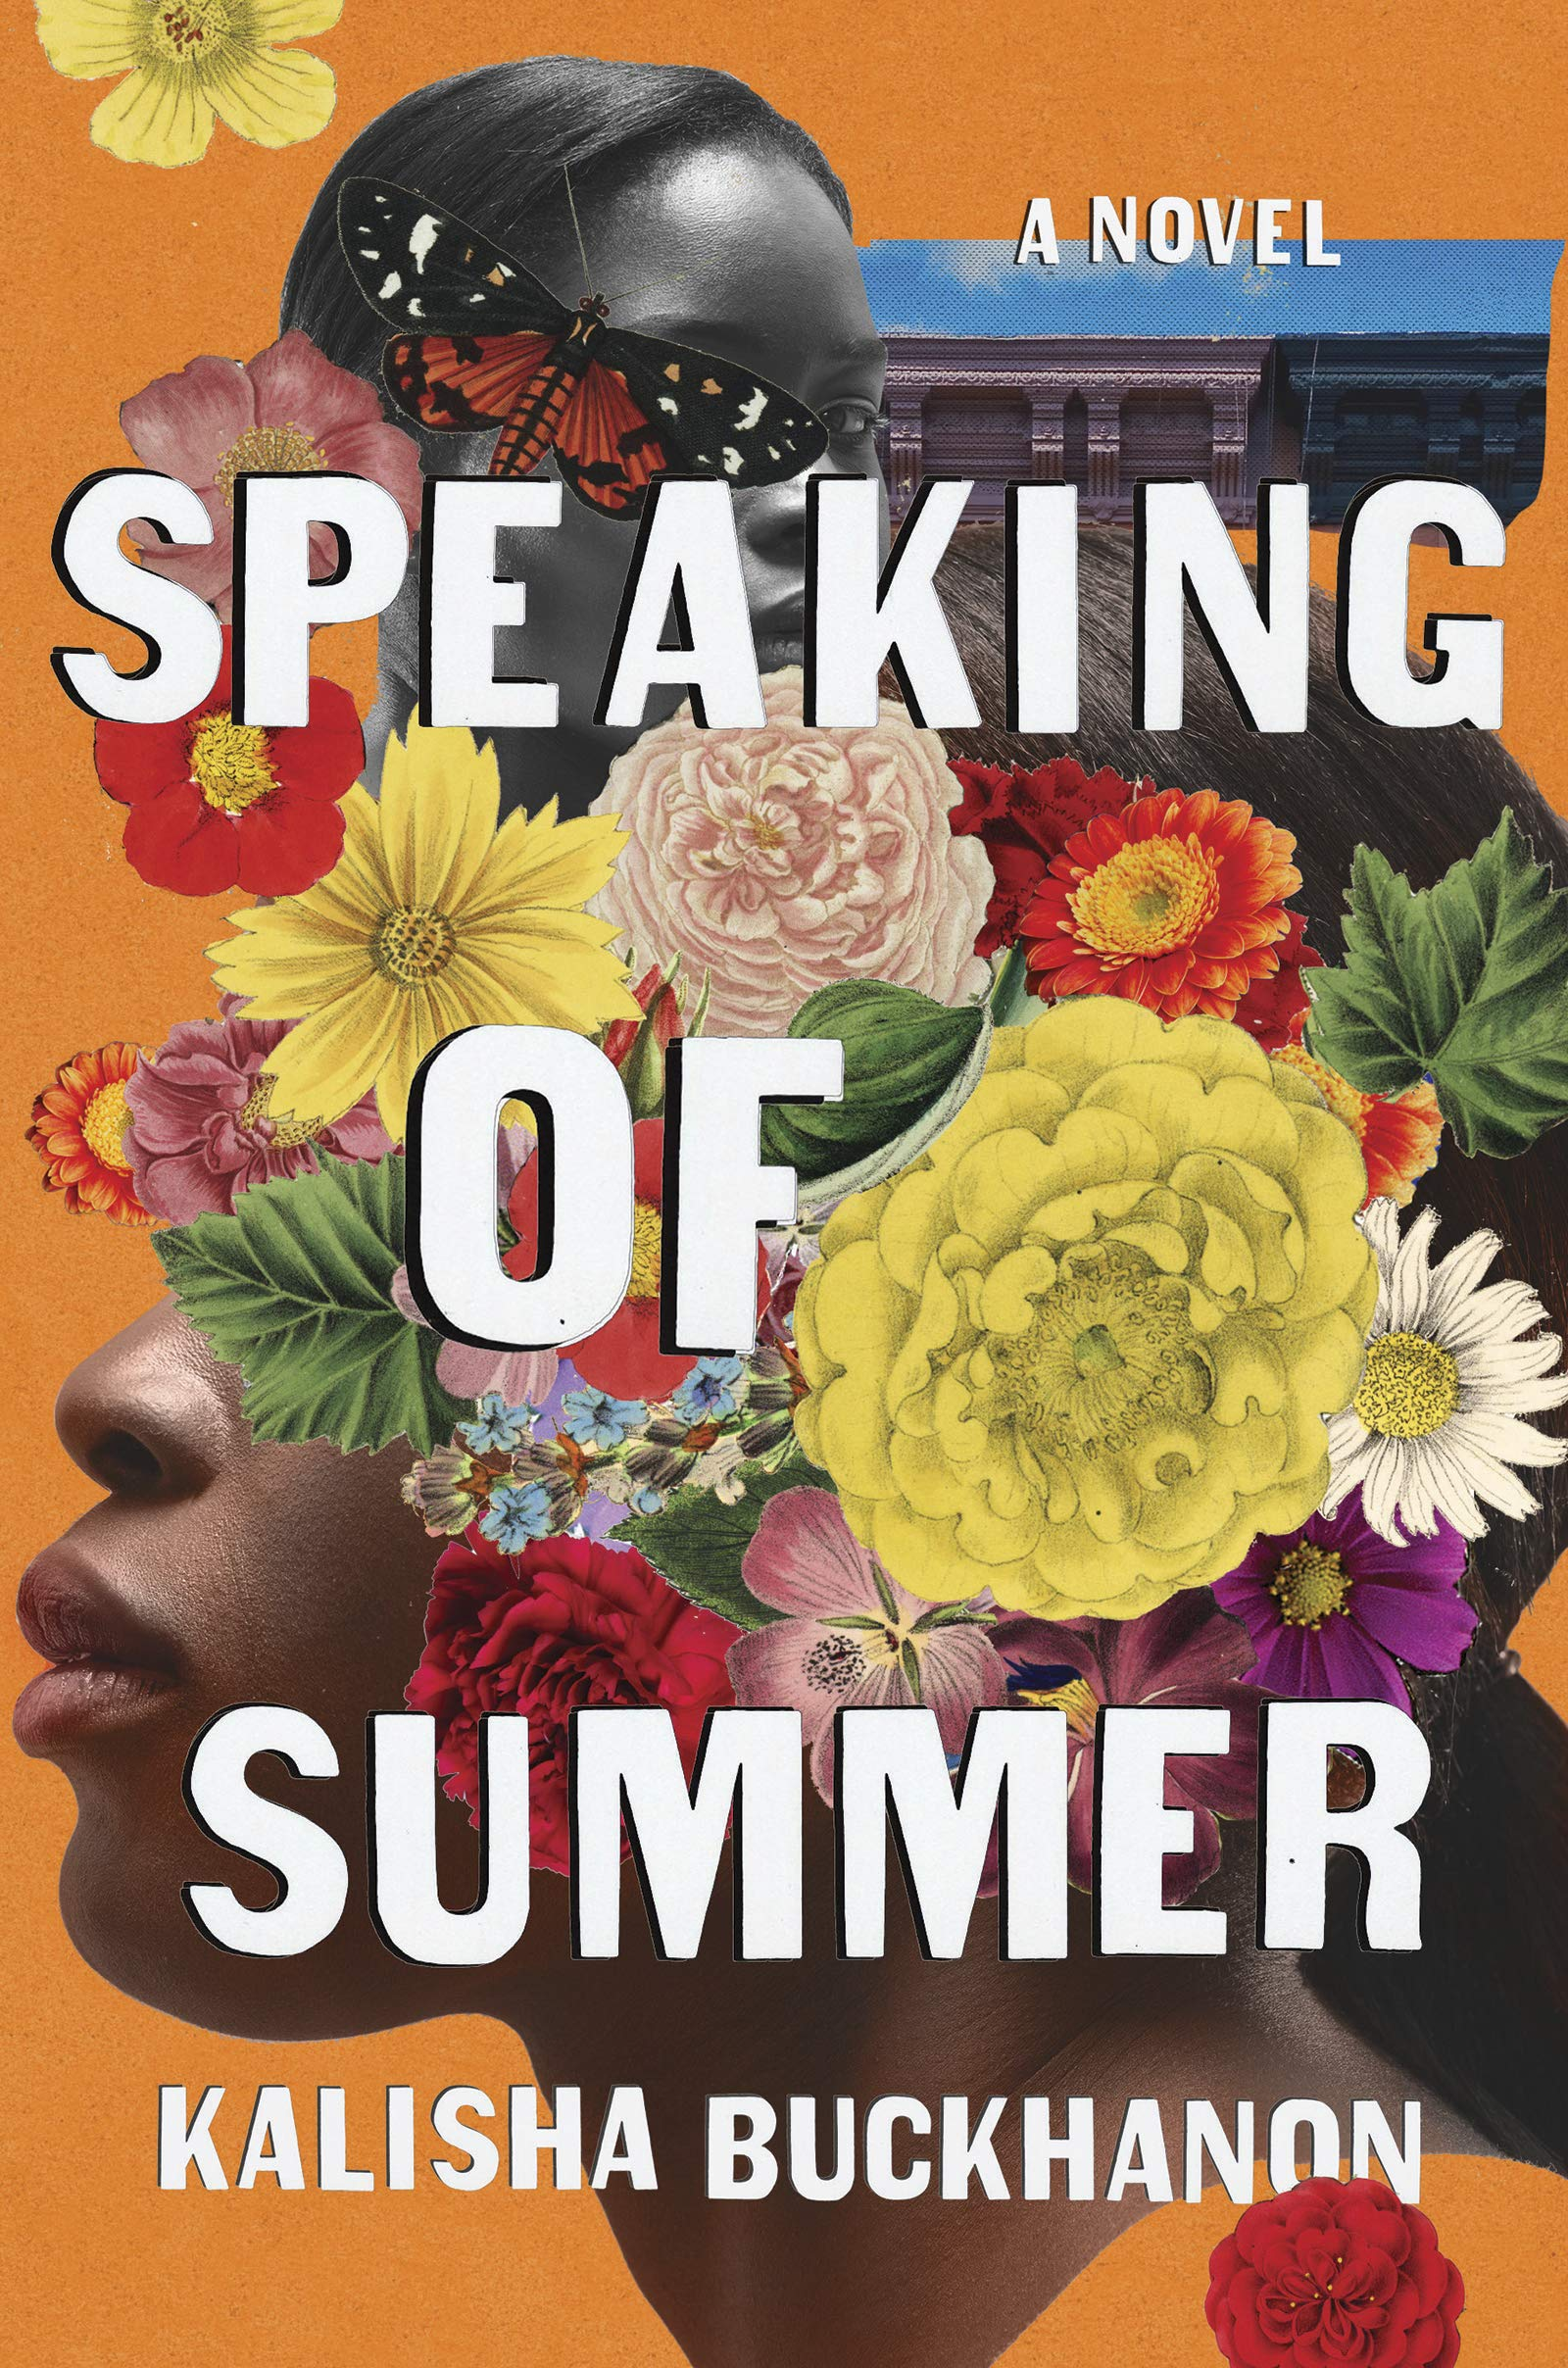 Speaking of Summer, by Kalisha Buckhanon